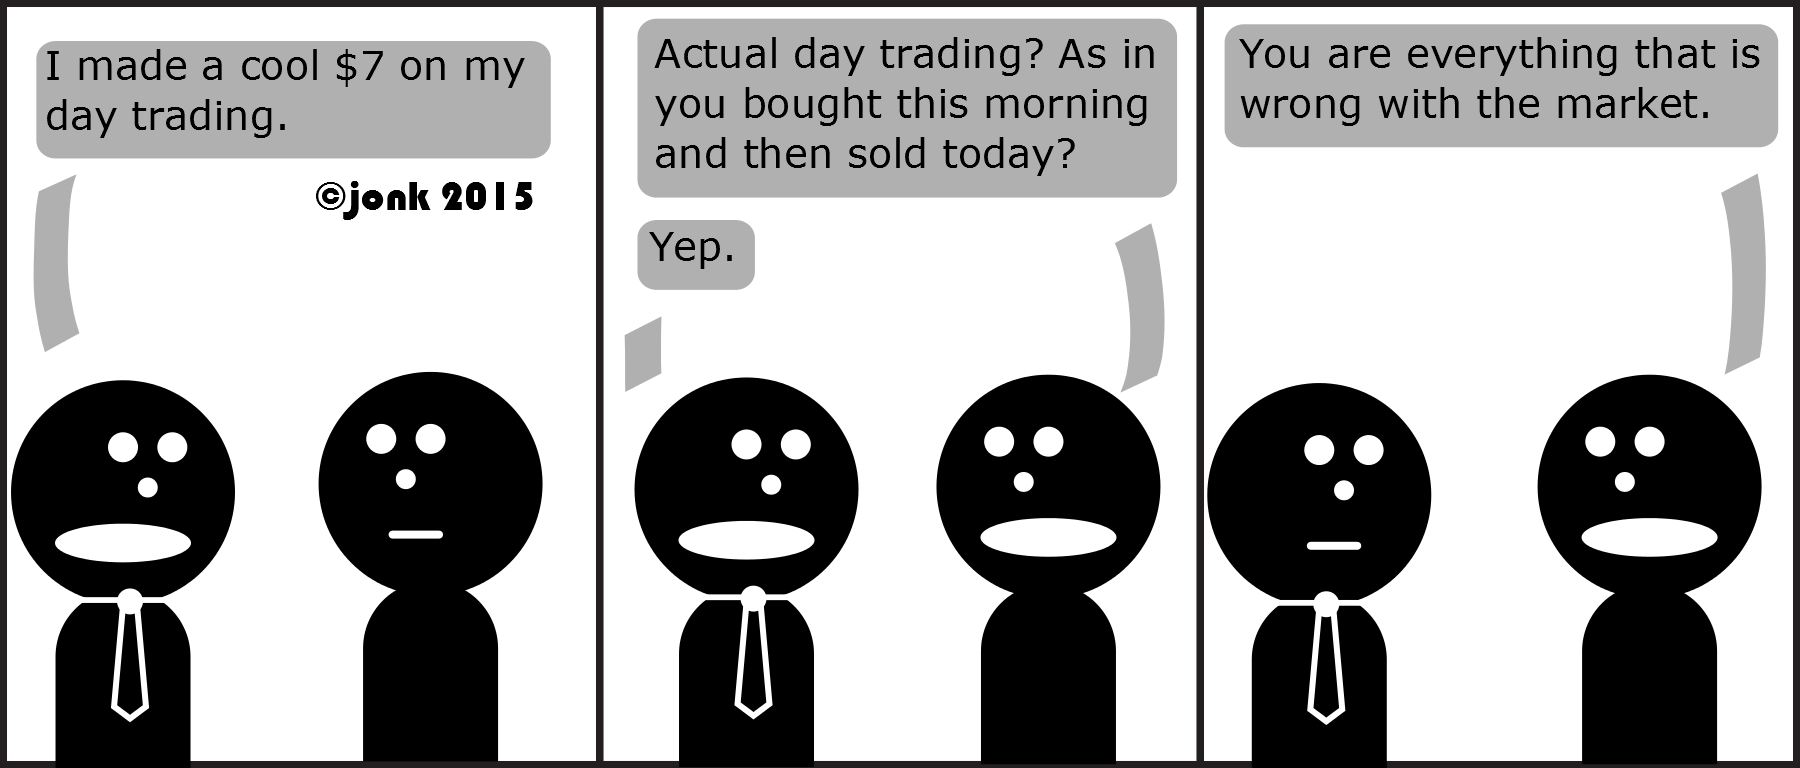 Tie: I made a cool $7 on my day trading.